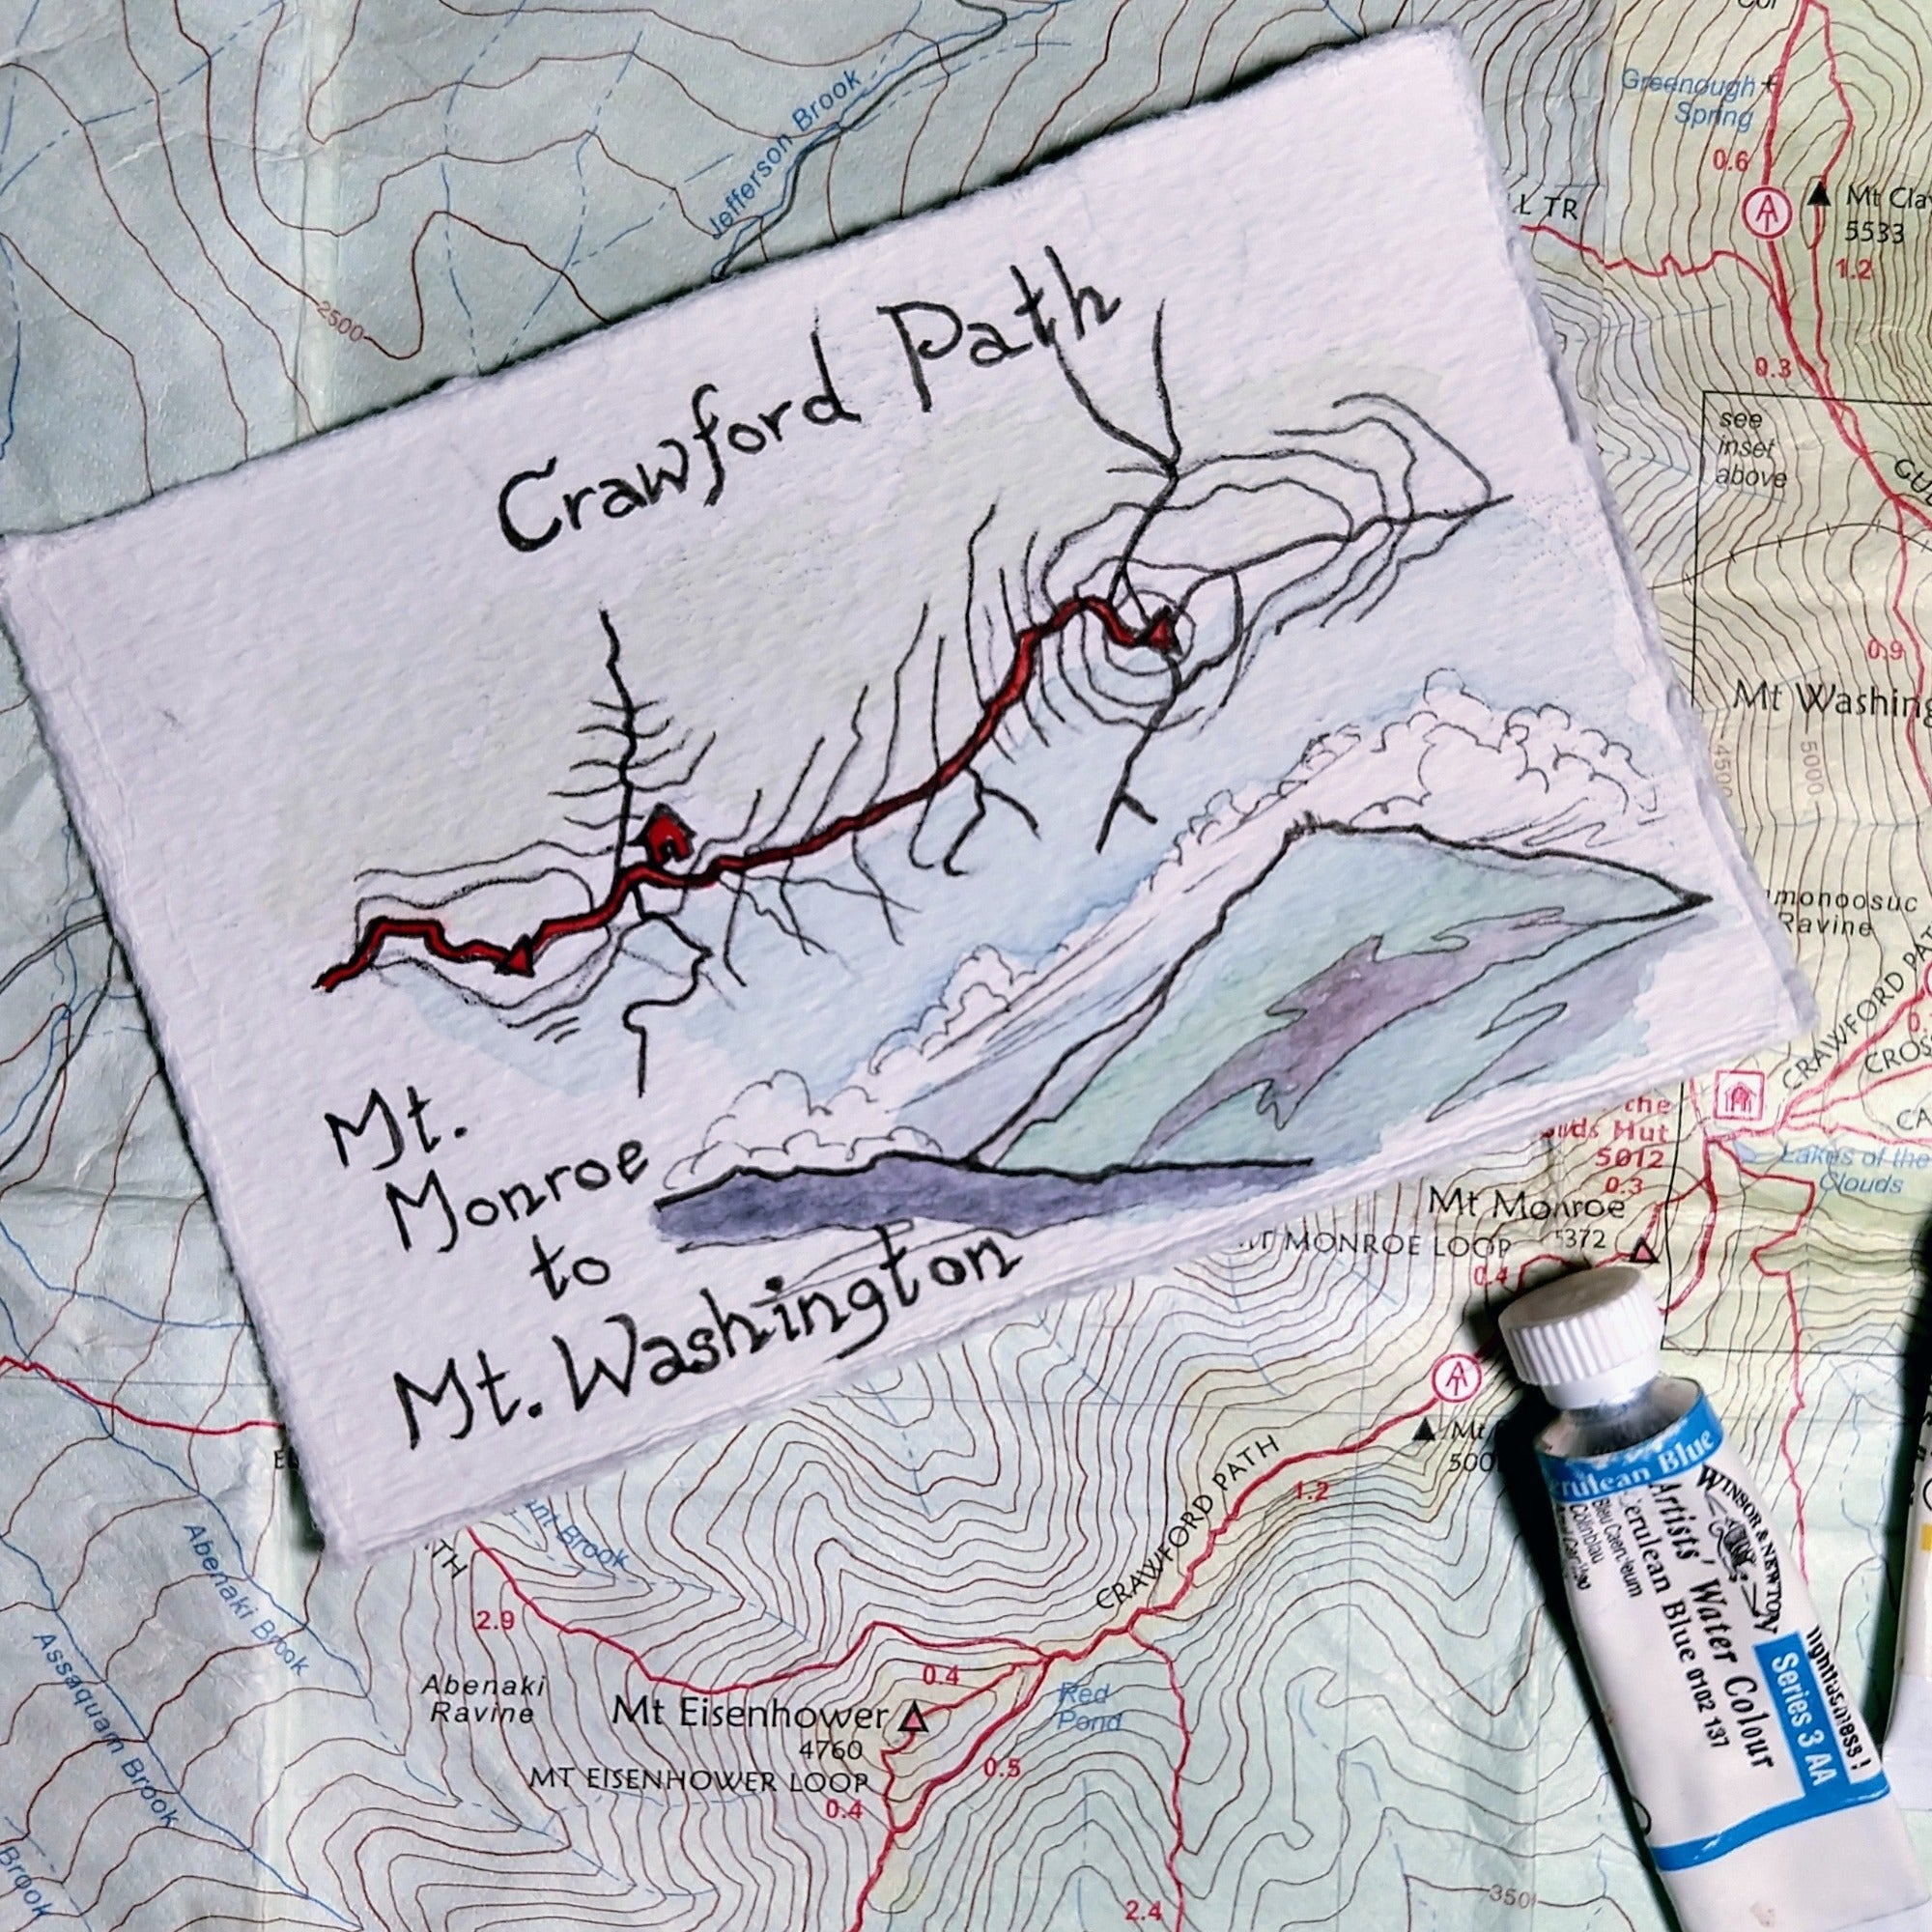 """Crawford Path: Mt. Monroe to Mt. Washington,"" one of my miniature map paintings. These small watercolor paintings are tiny artworks of my favorite trails in the White Mountains of New Hampshire, home of some of the Northeast's best hiking!"